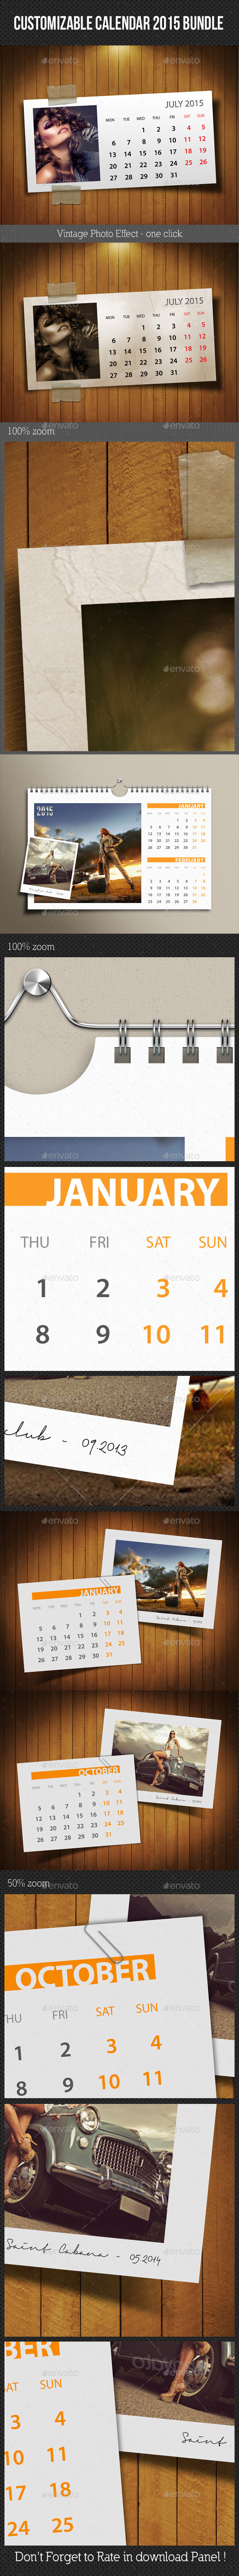 GraphicRiver 3 in 1 Customizable Calendar 2015 Bundle 9609272